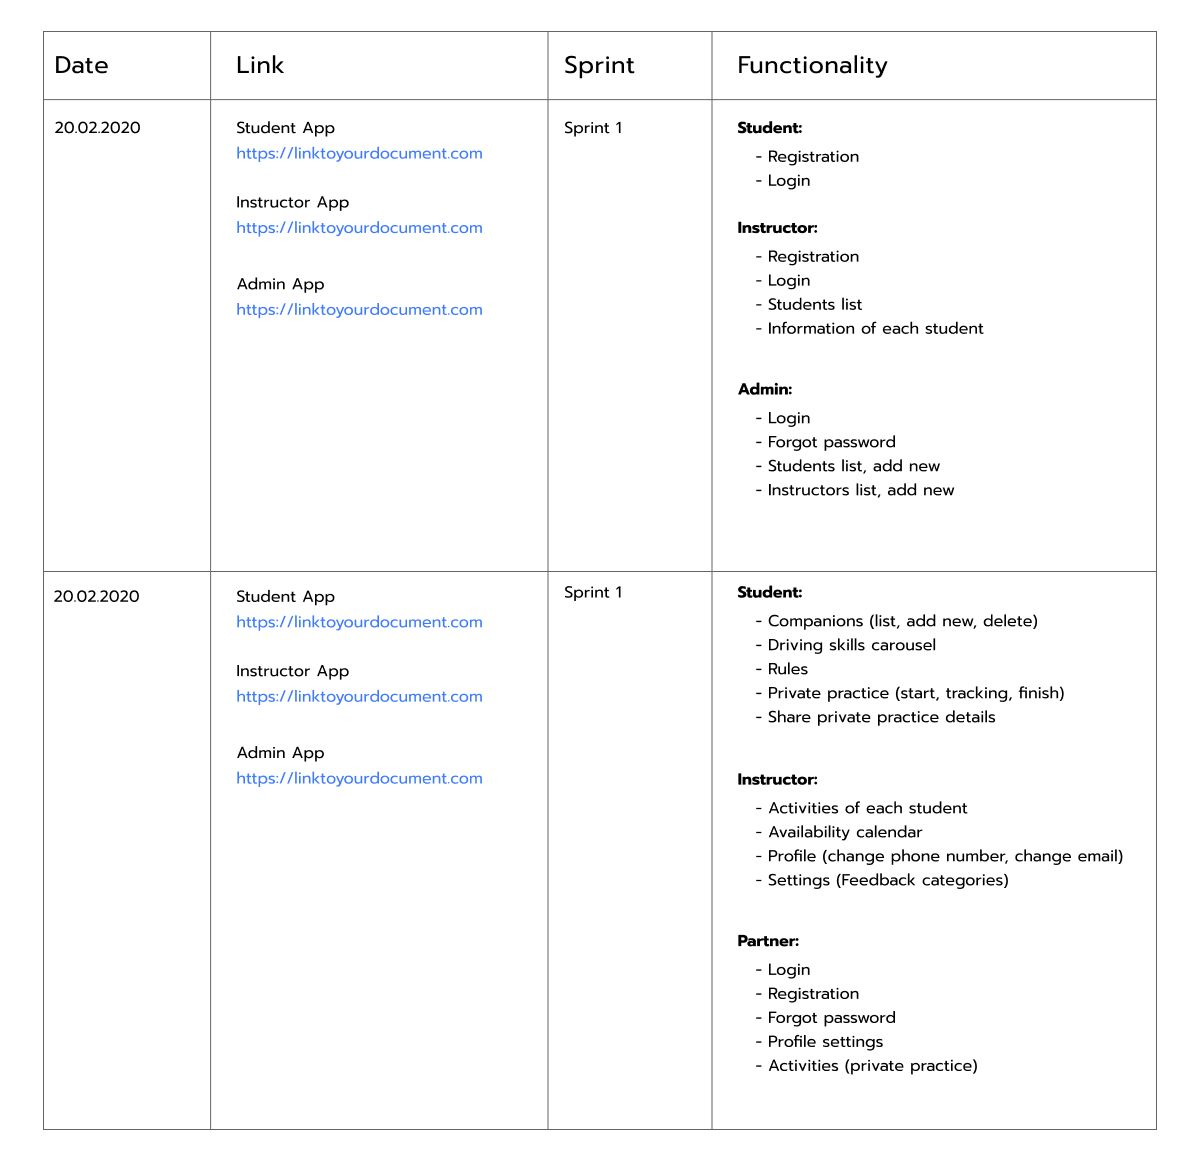 Table with features for edtech app. 2 first sprints